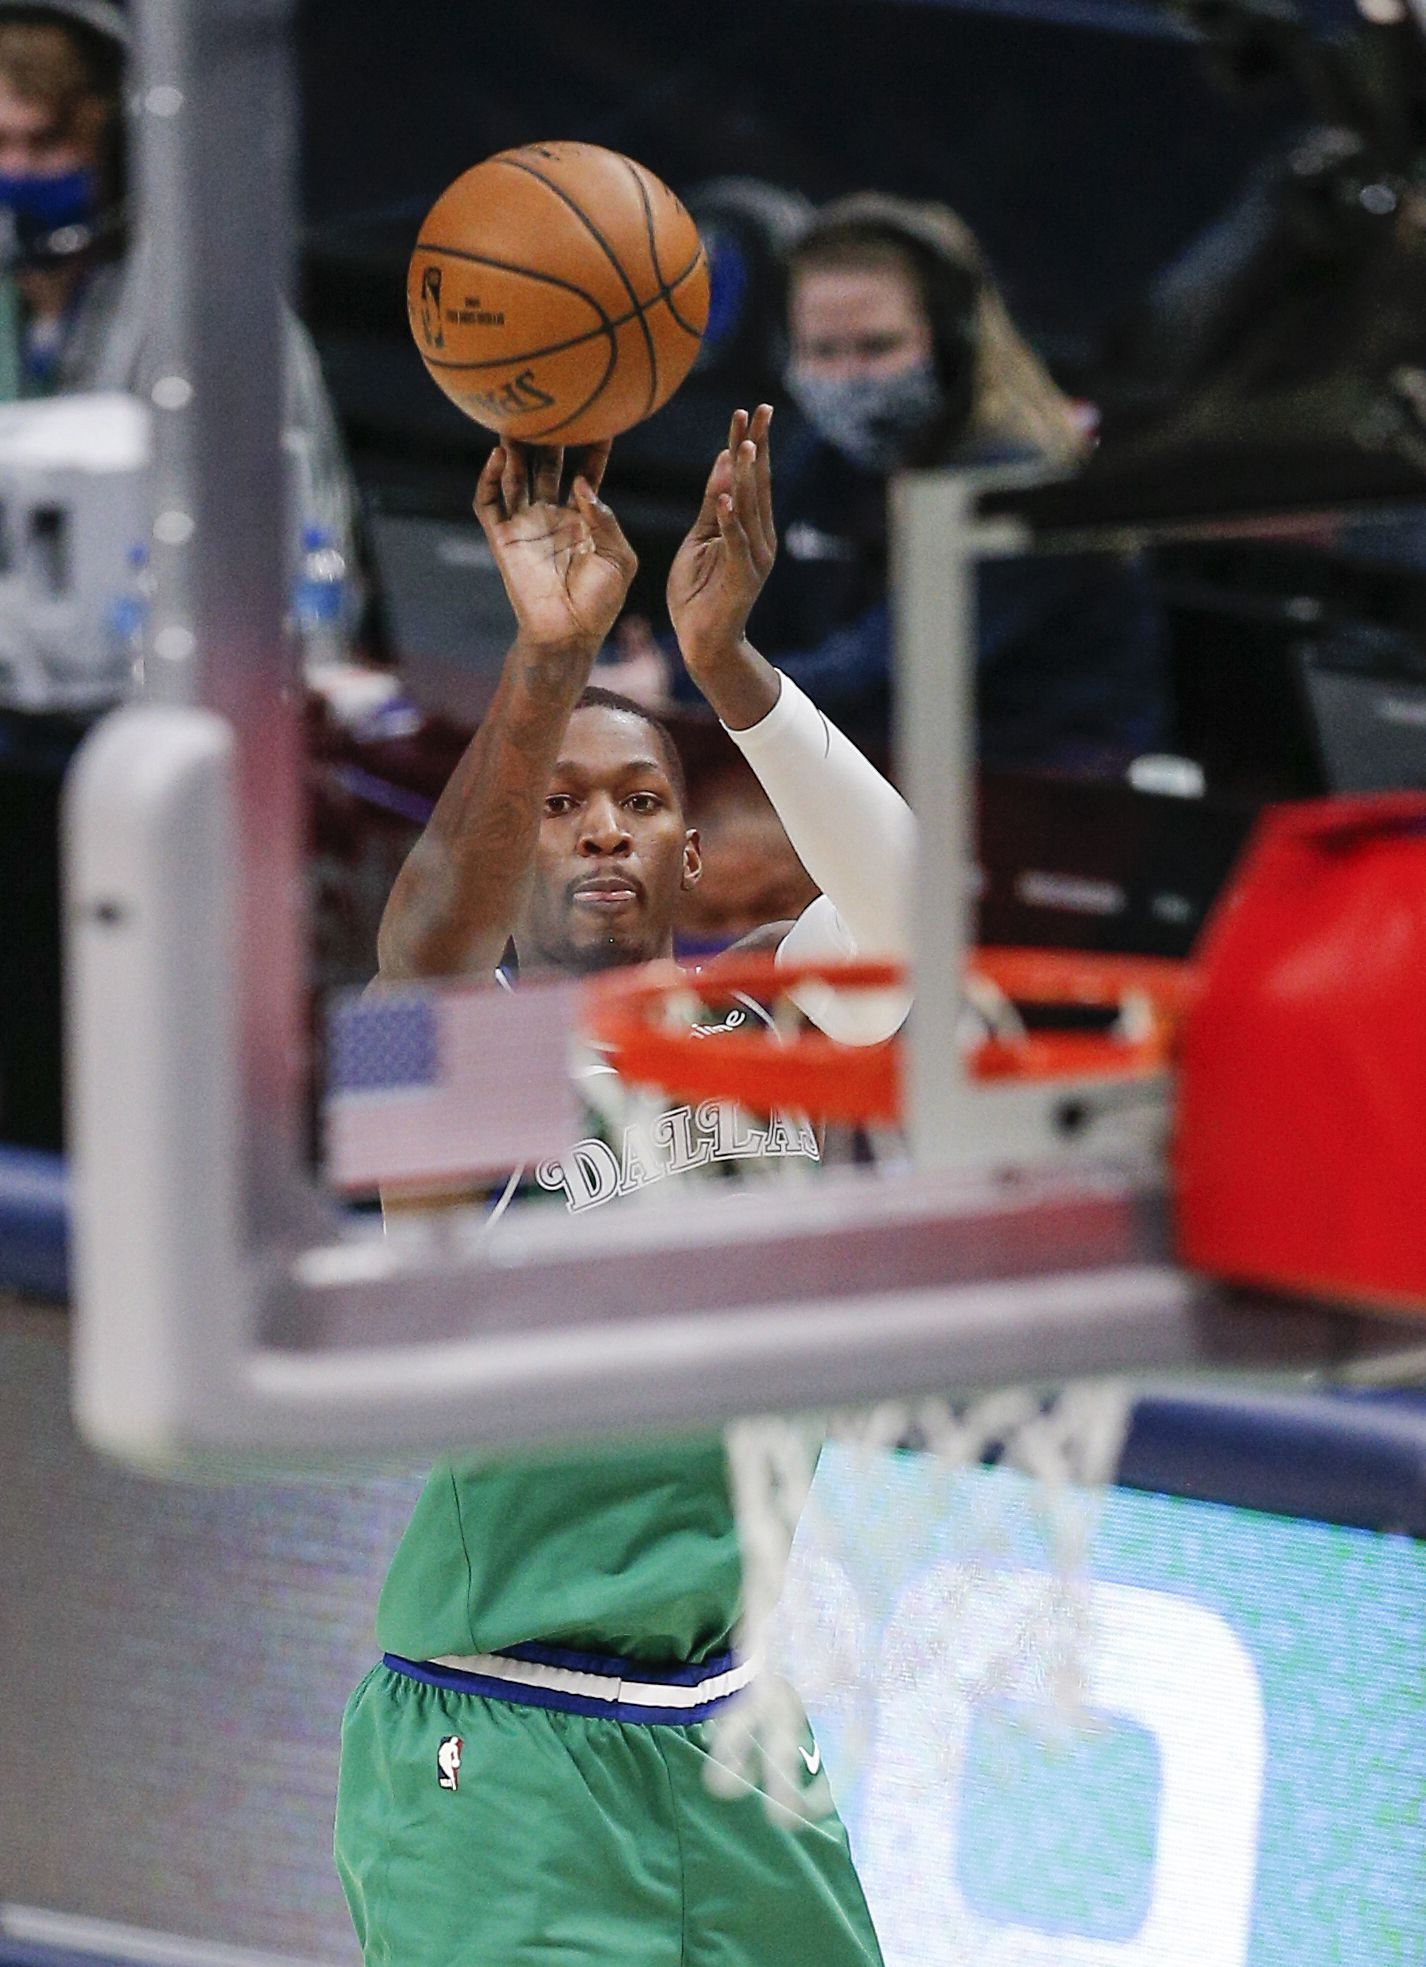 Dallas Mavericks forward Dorian Finney-Smith (10) attempts a shot during the second half of an NBA basketball game against the Phoenix Suns in Dallas, Saturday, January 30, 2021. Phoenix won 111-105. (Brandon Wade/Special Contributor)